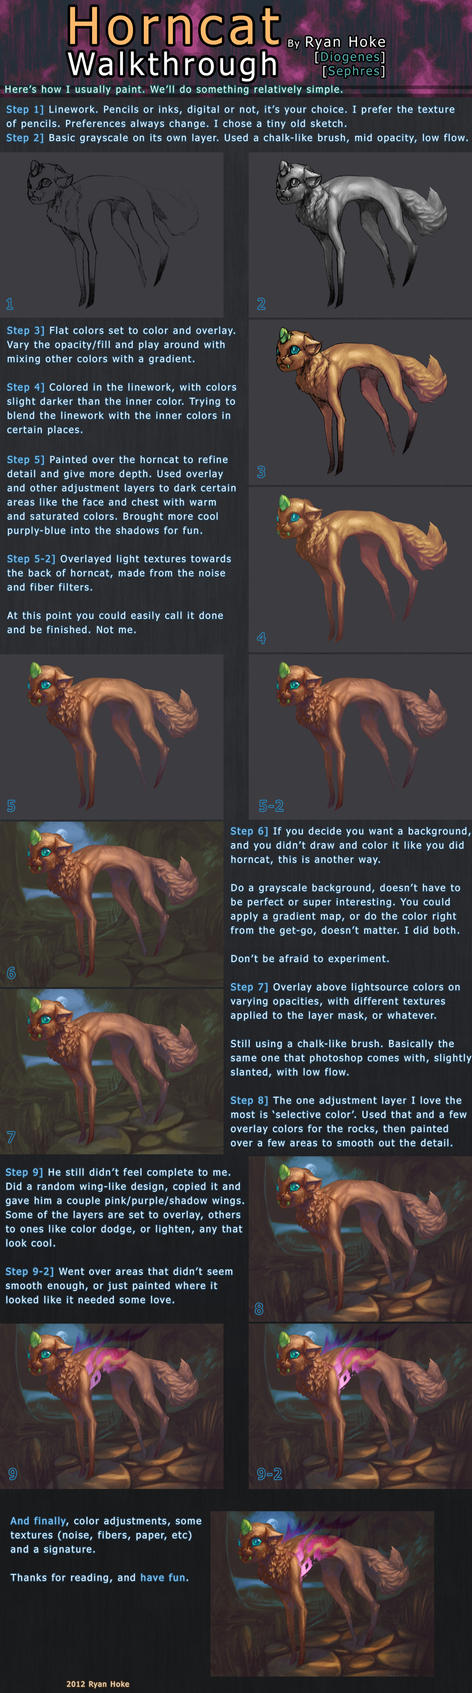 Horncat Walkthrough by diogenes